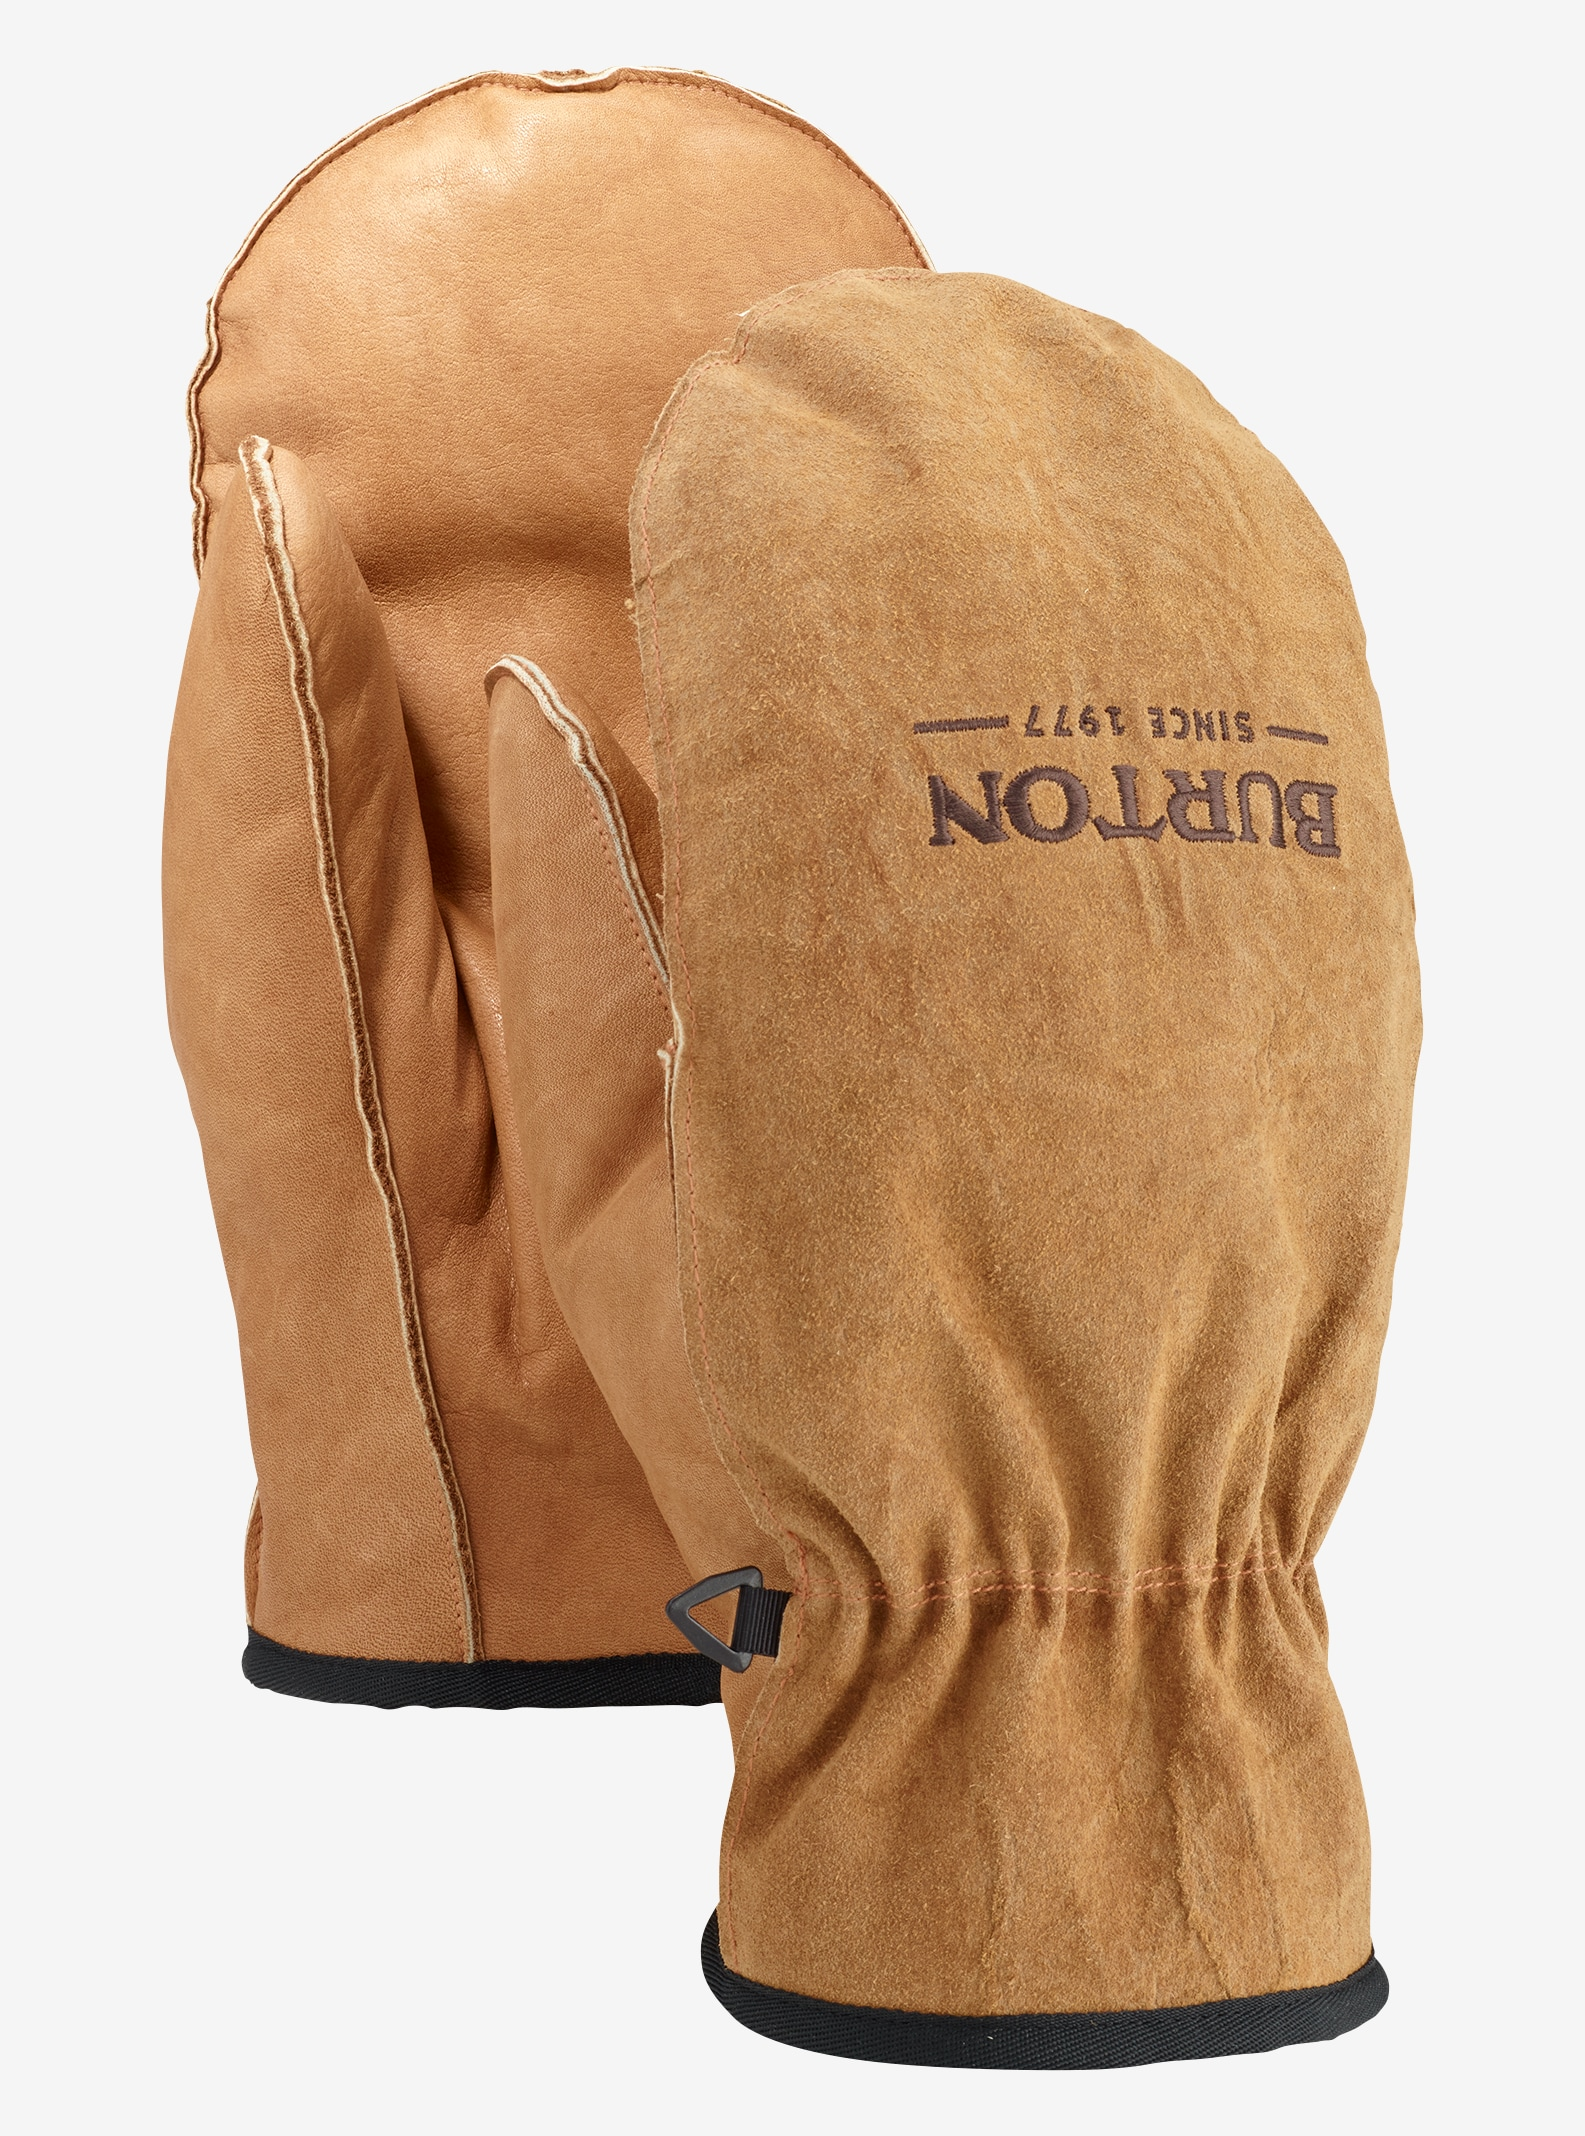 Men's Burton Work Horse Leather Mitt shown in Raw Hide